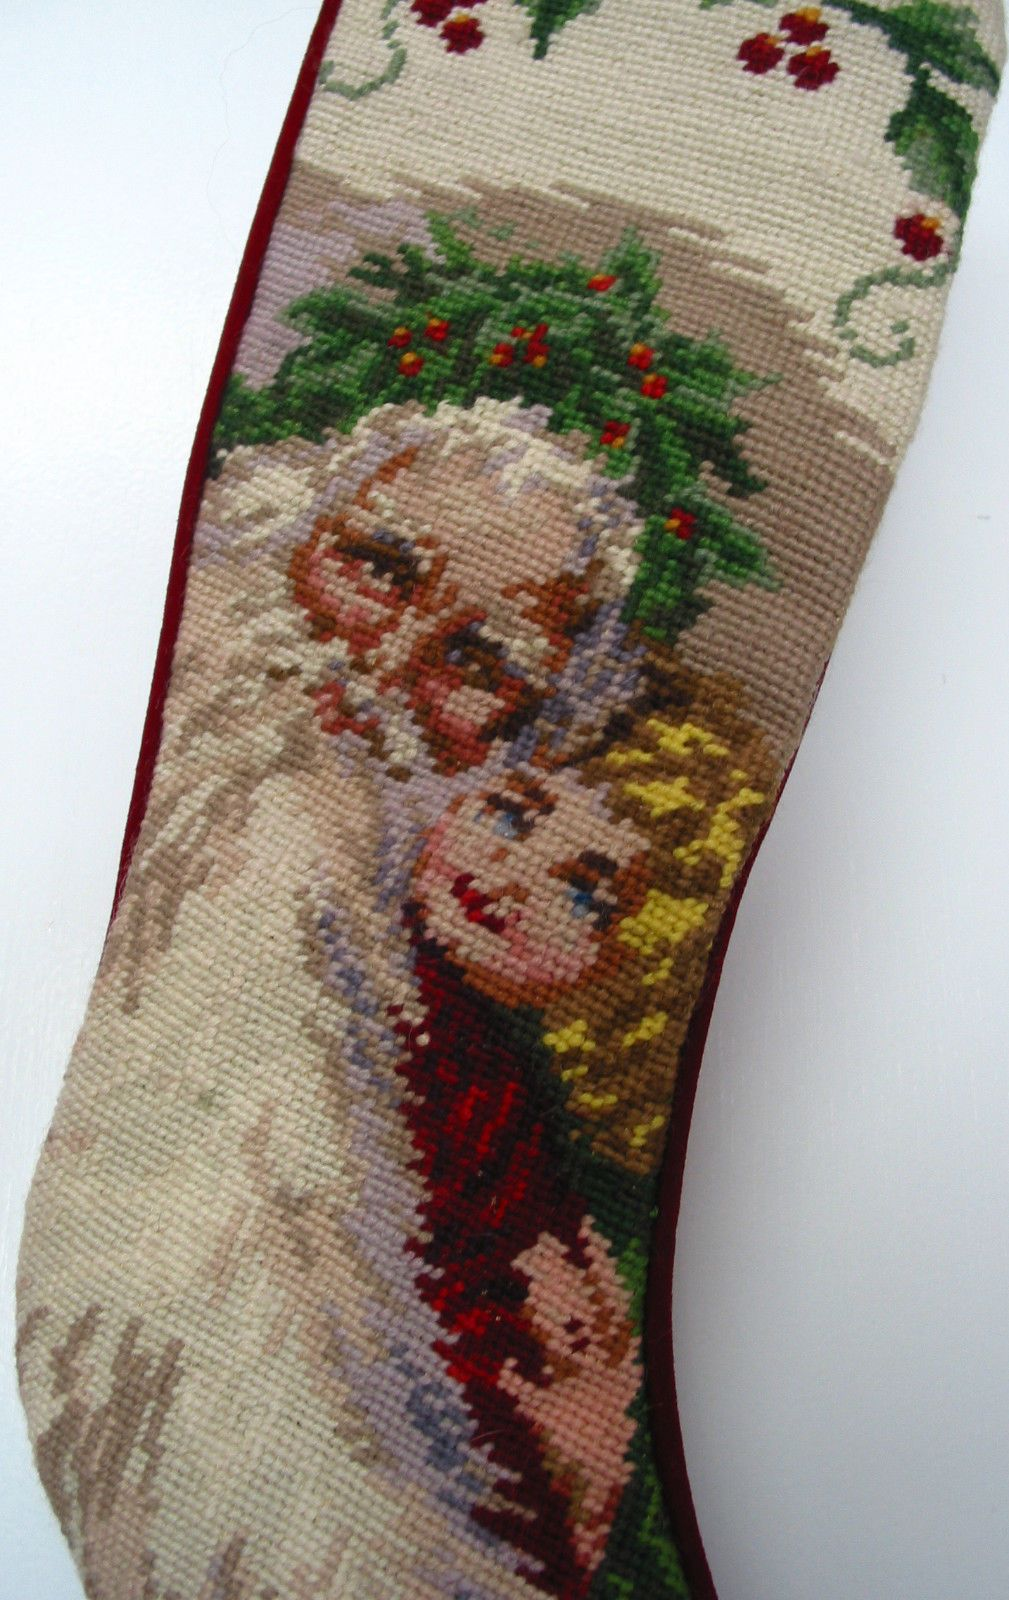 4 Vintage Hand Embroidered Needlepoint Christmas Stockings ...